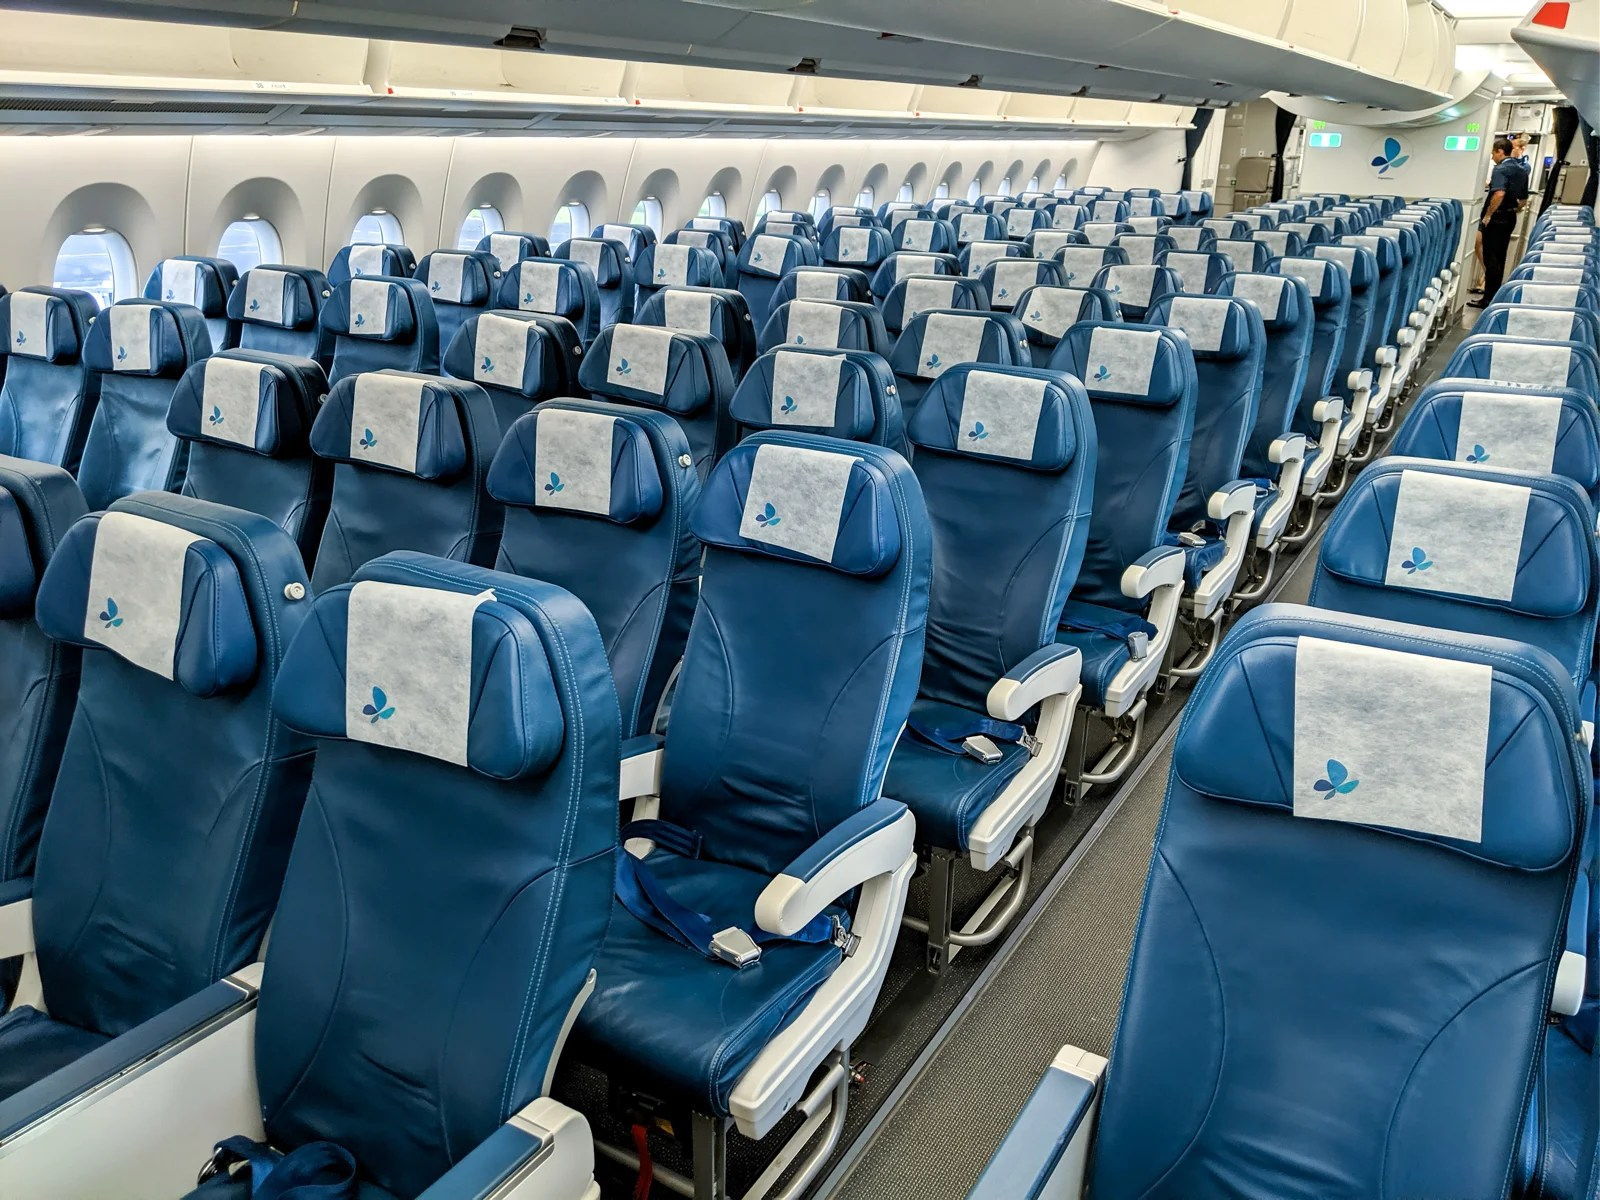 You can take a virtual 3D tour inside the world's densest Airbus A350